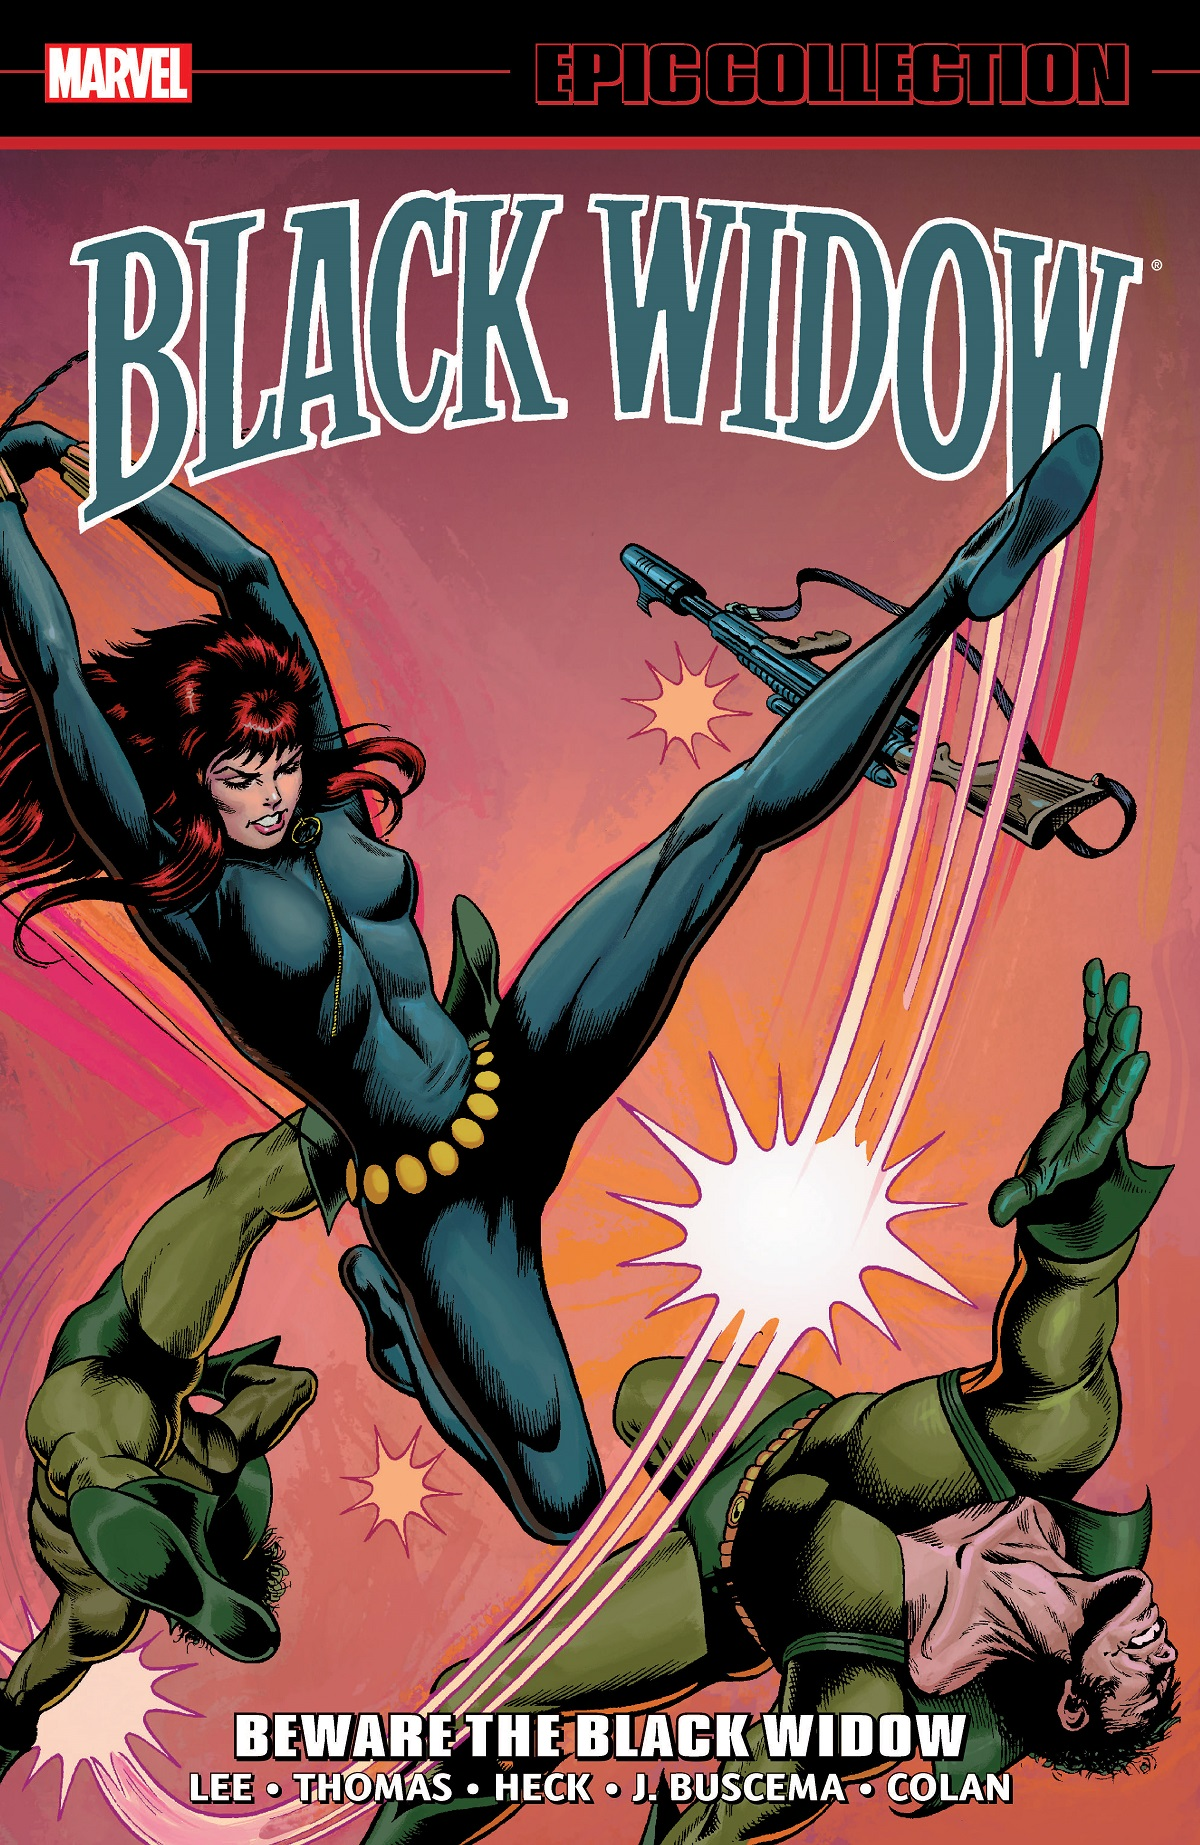 Black Widow Epic Collection: Beware the Black Widow (Trade Paperback)